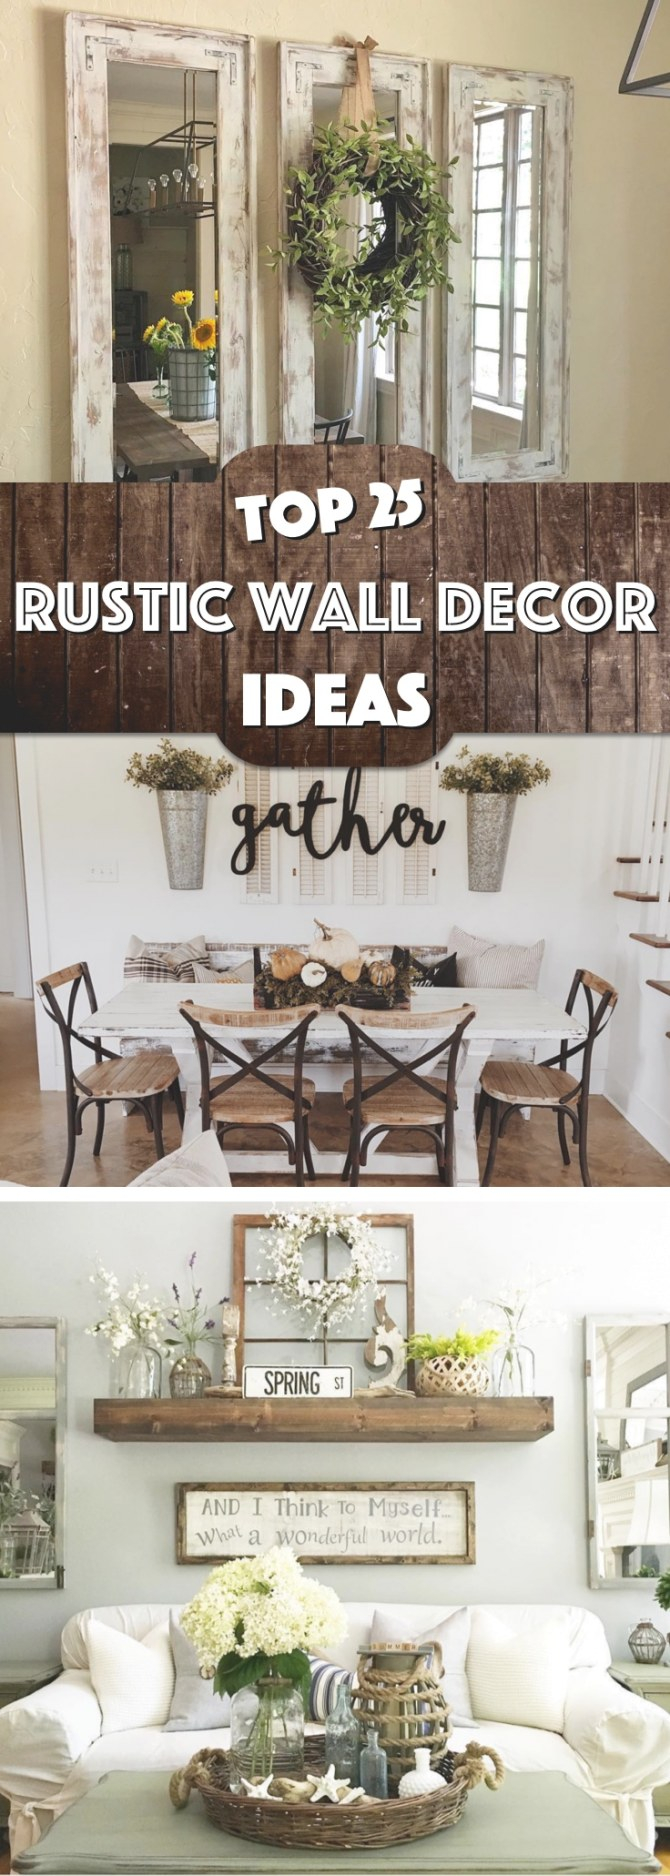 25 Must-Try Rustic Wall Decor Ideas Featuring The Most within Wall Decor Ideas